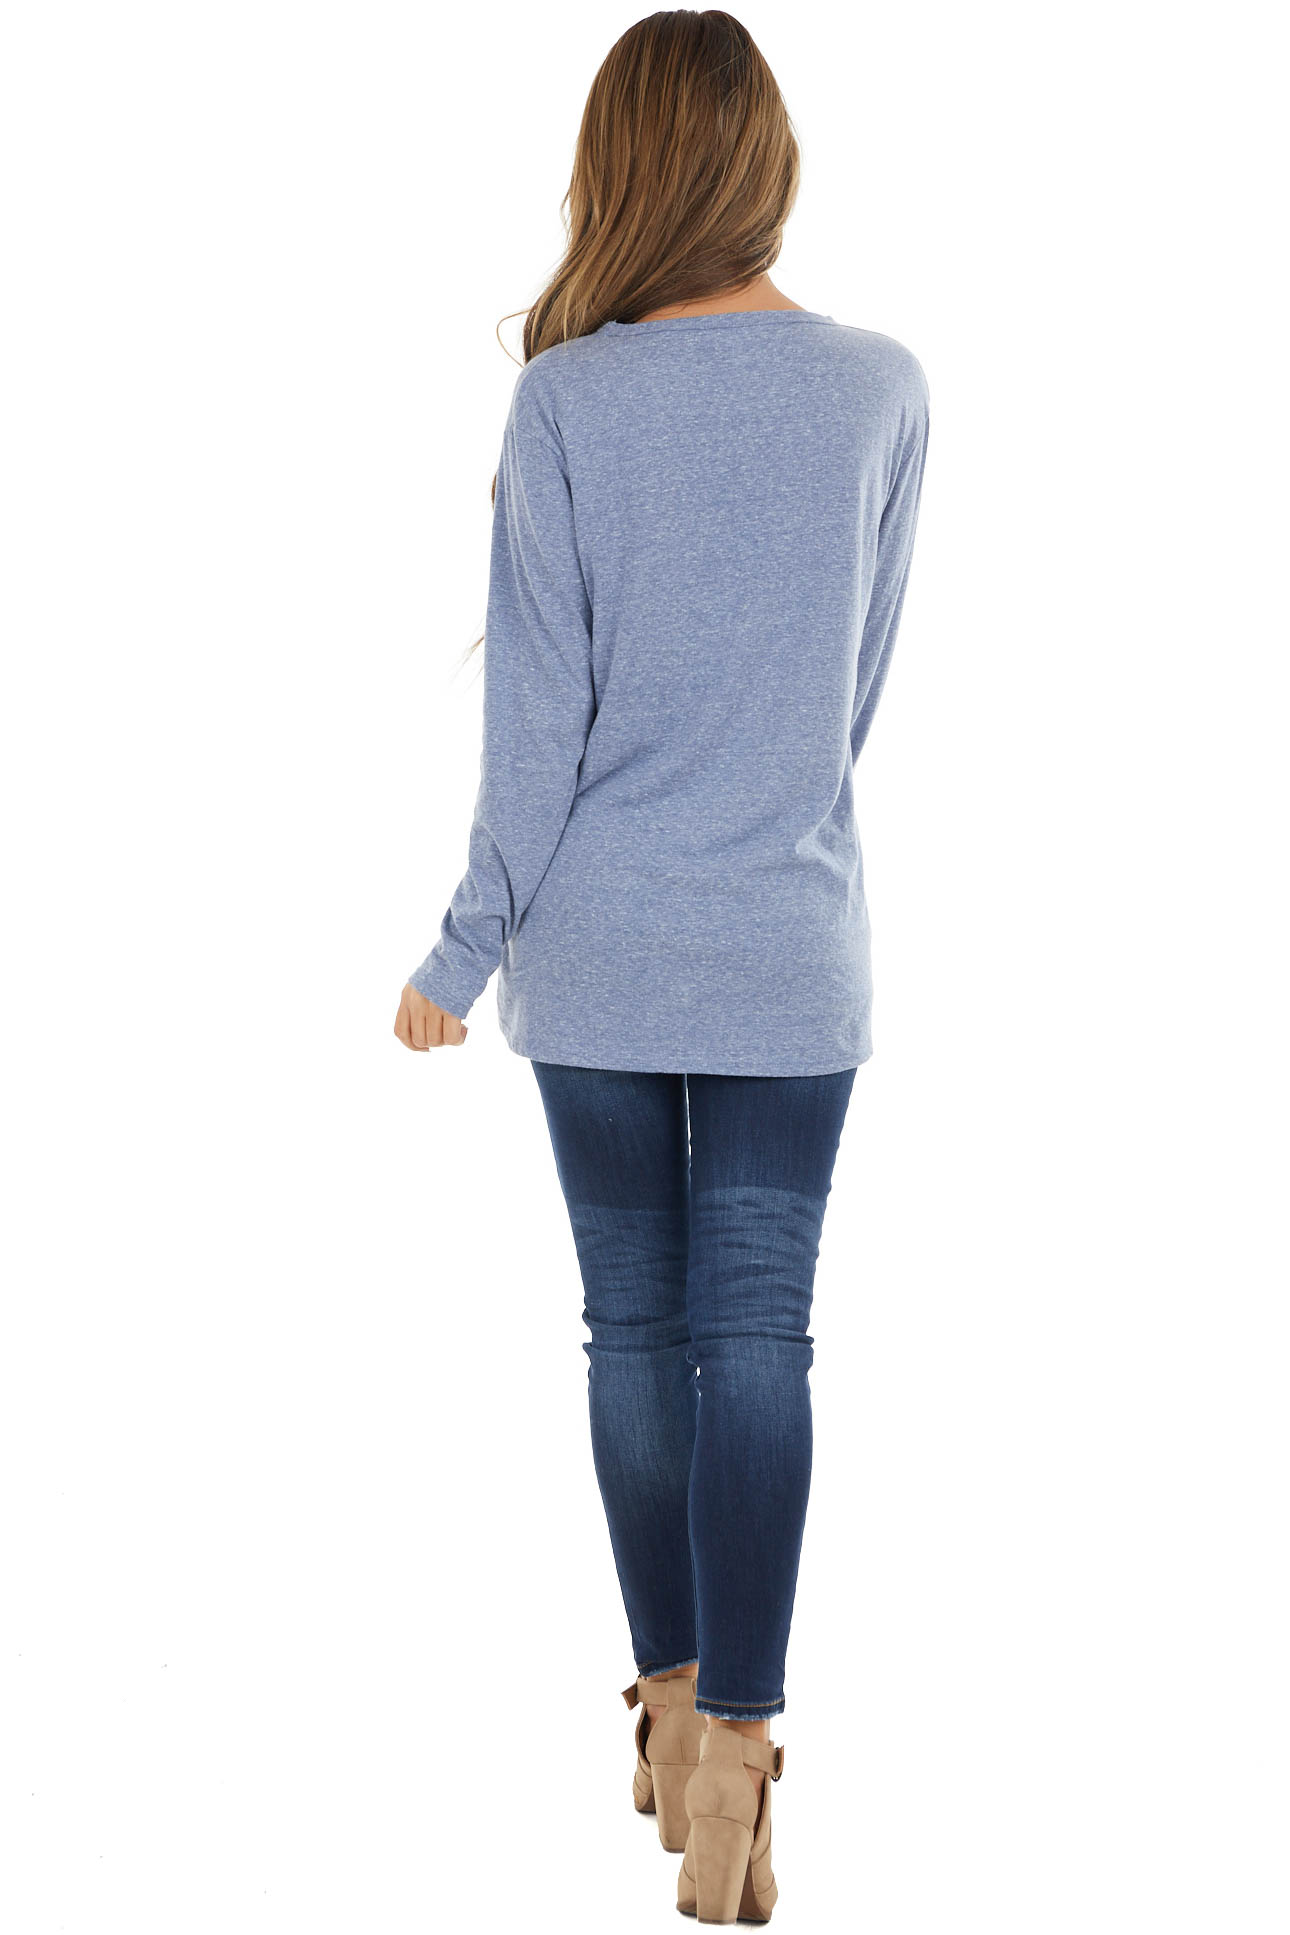 Heathered Dusty Blue Long Sleeve Top with V Cutout Detail